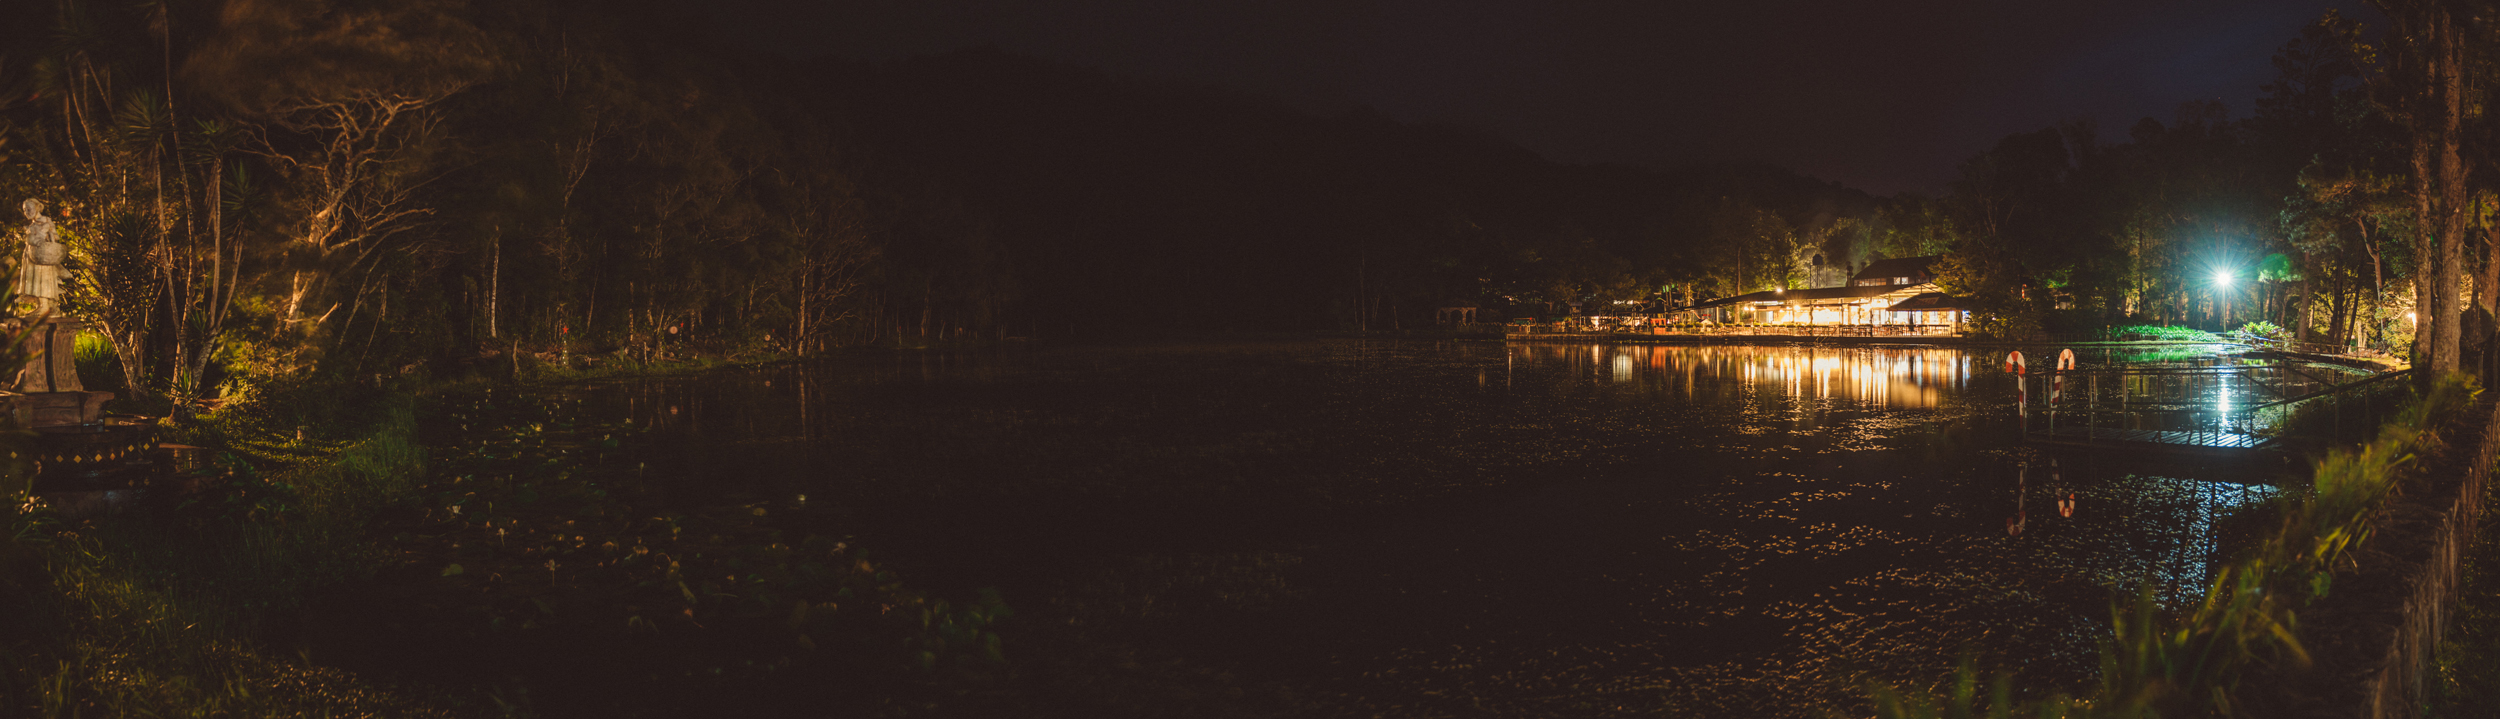 Selva Negra by night; restaurant on the right, just out of frame on the left was the building we stayed in.